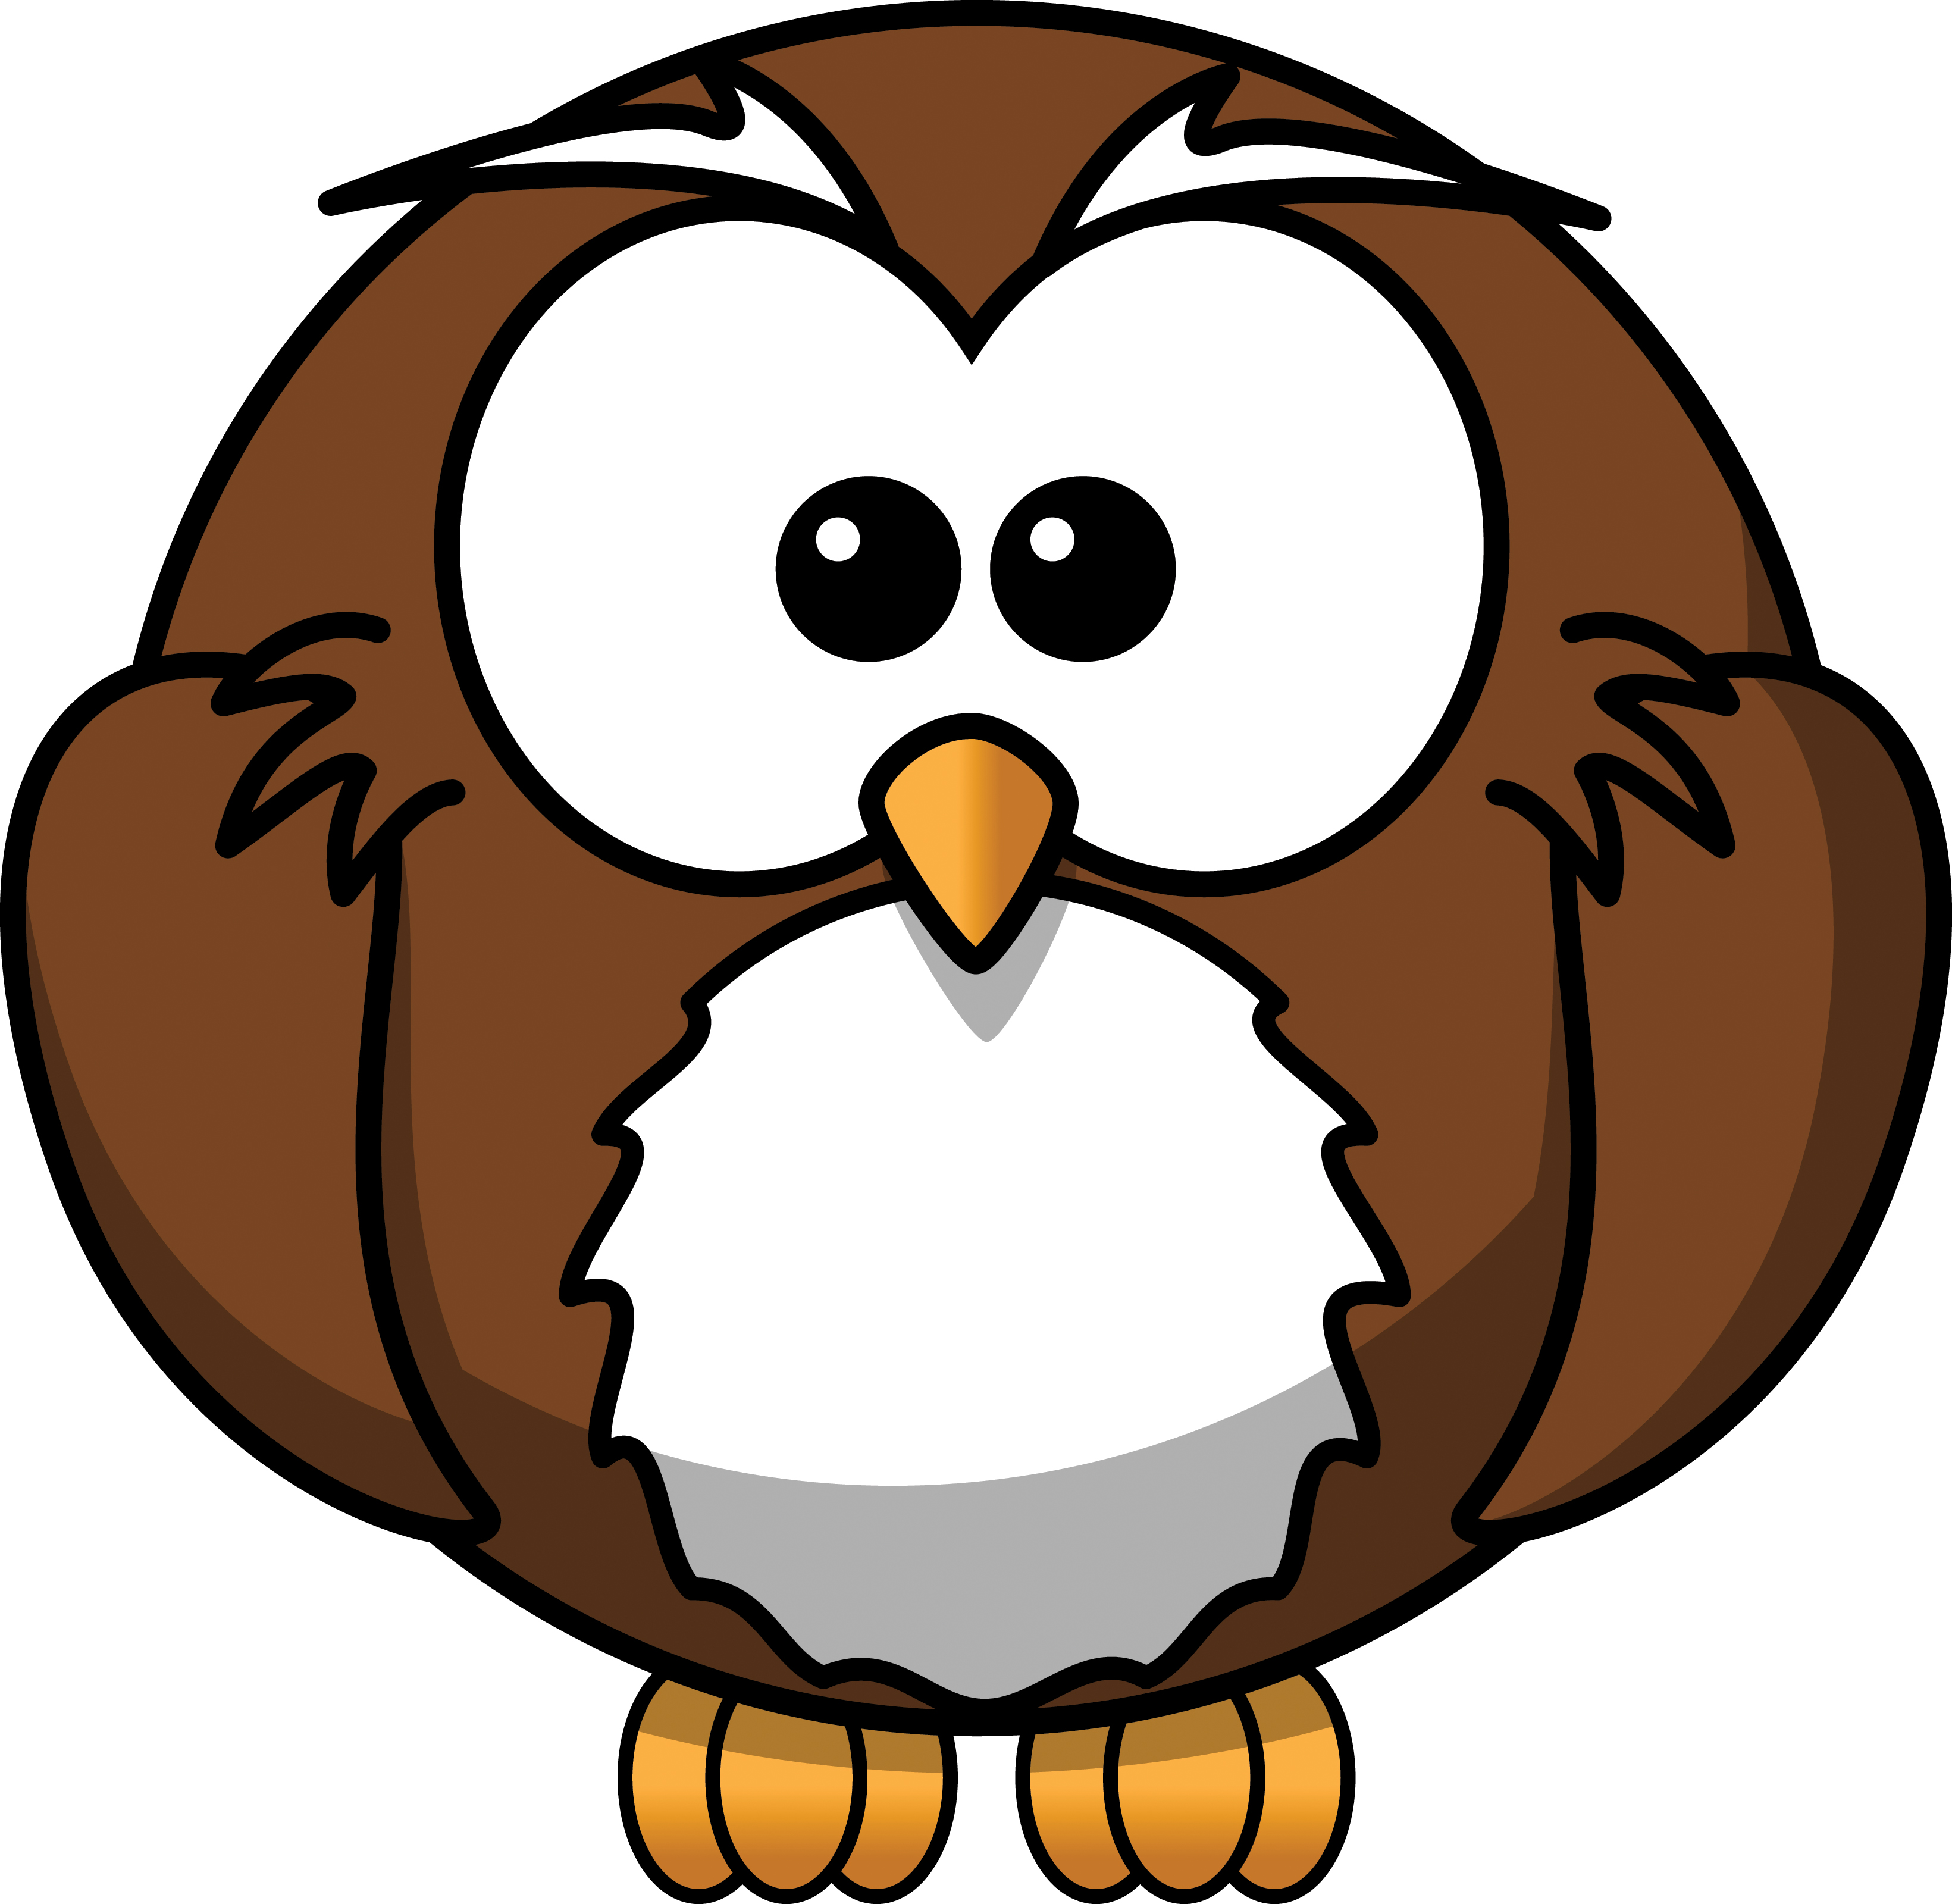 Free Cartoon Owl Clipart by 0001176 .-Free Cartoon Owl Clipart by 0001176 .-2